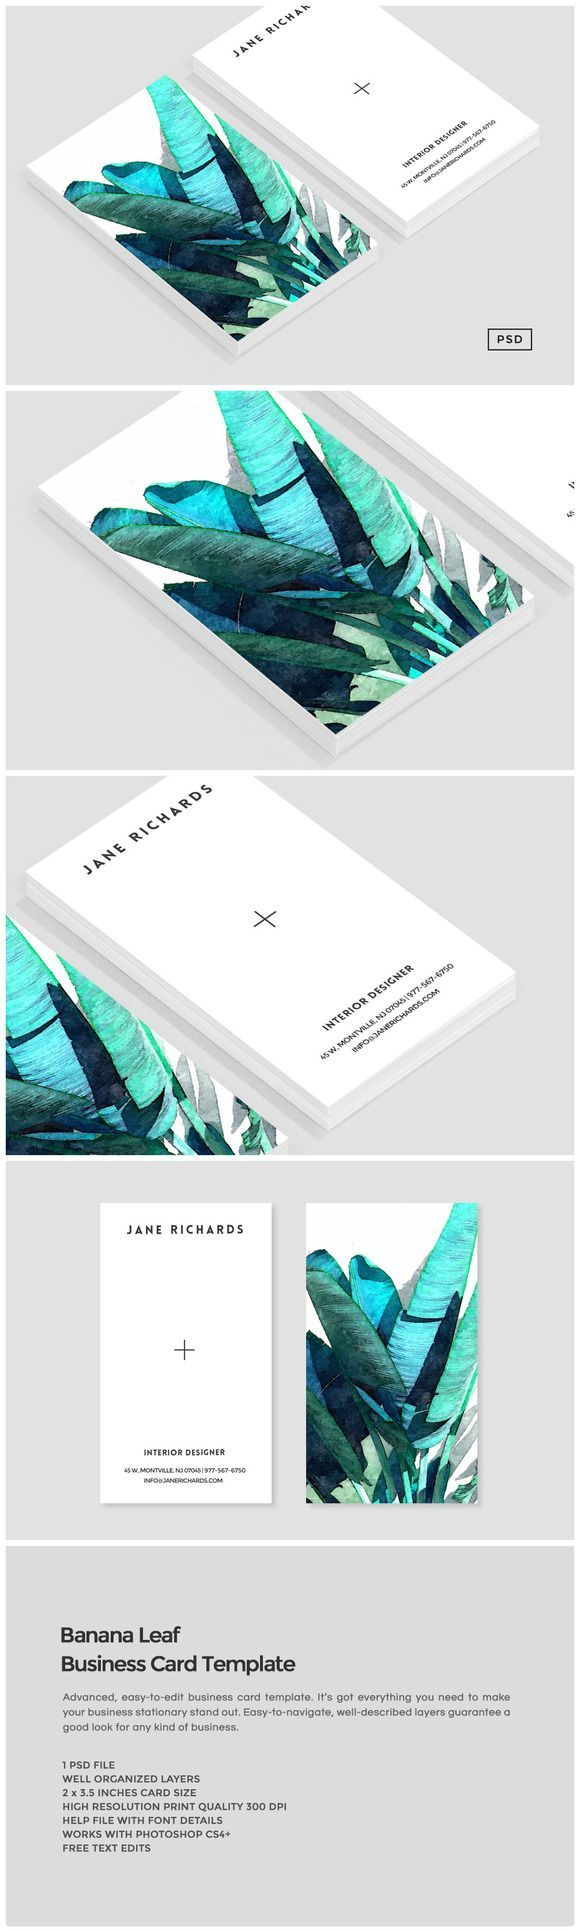 Banana Leaf Business Card Template Introducing our latest Banana Leaf business card template, perfect for use in your next project or for your own brand identity. All our logo design ... creativemarket.co...